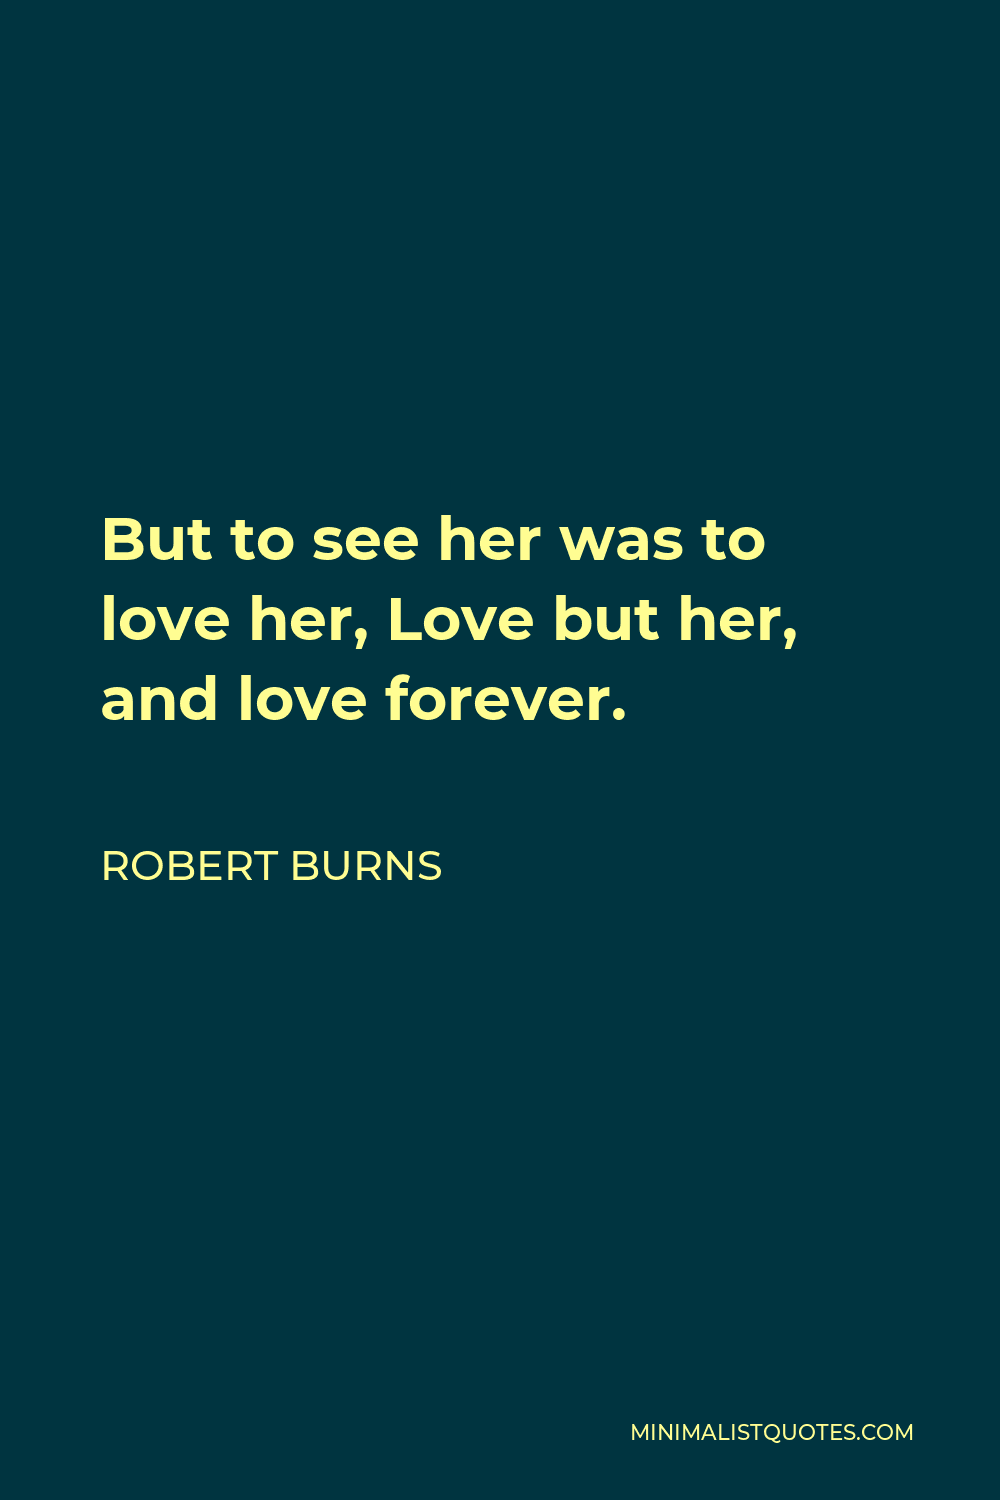 Robert Burns Quote - But to see her was to love her, Love but her, and love forever. Had we never lou'd sae kindly, Had we never lou'd sae blindly, Never met – or never parted – We had ne'er been broken hearted.